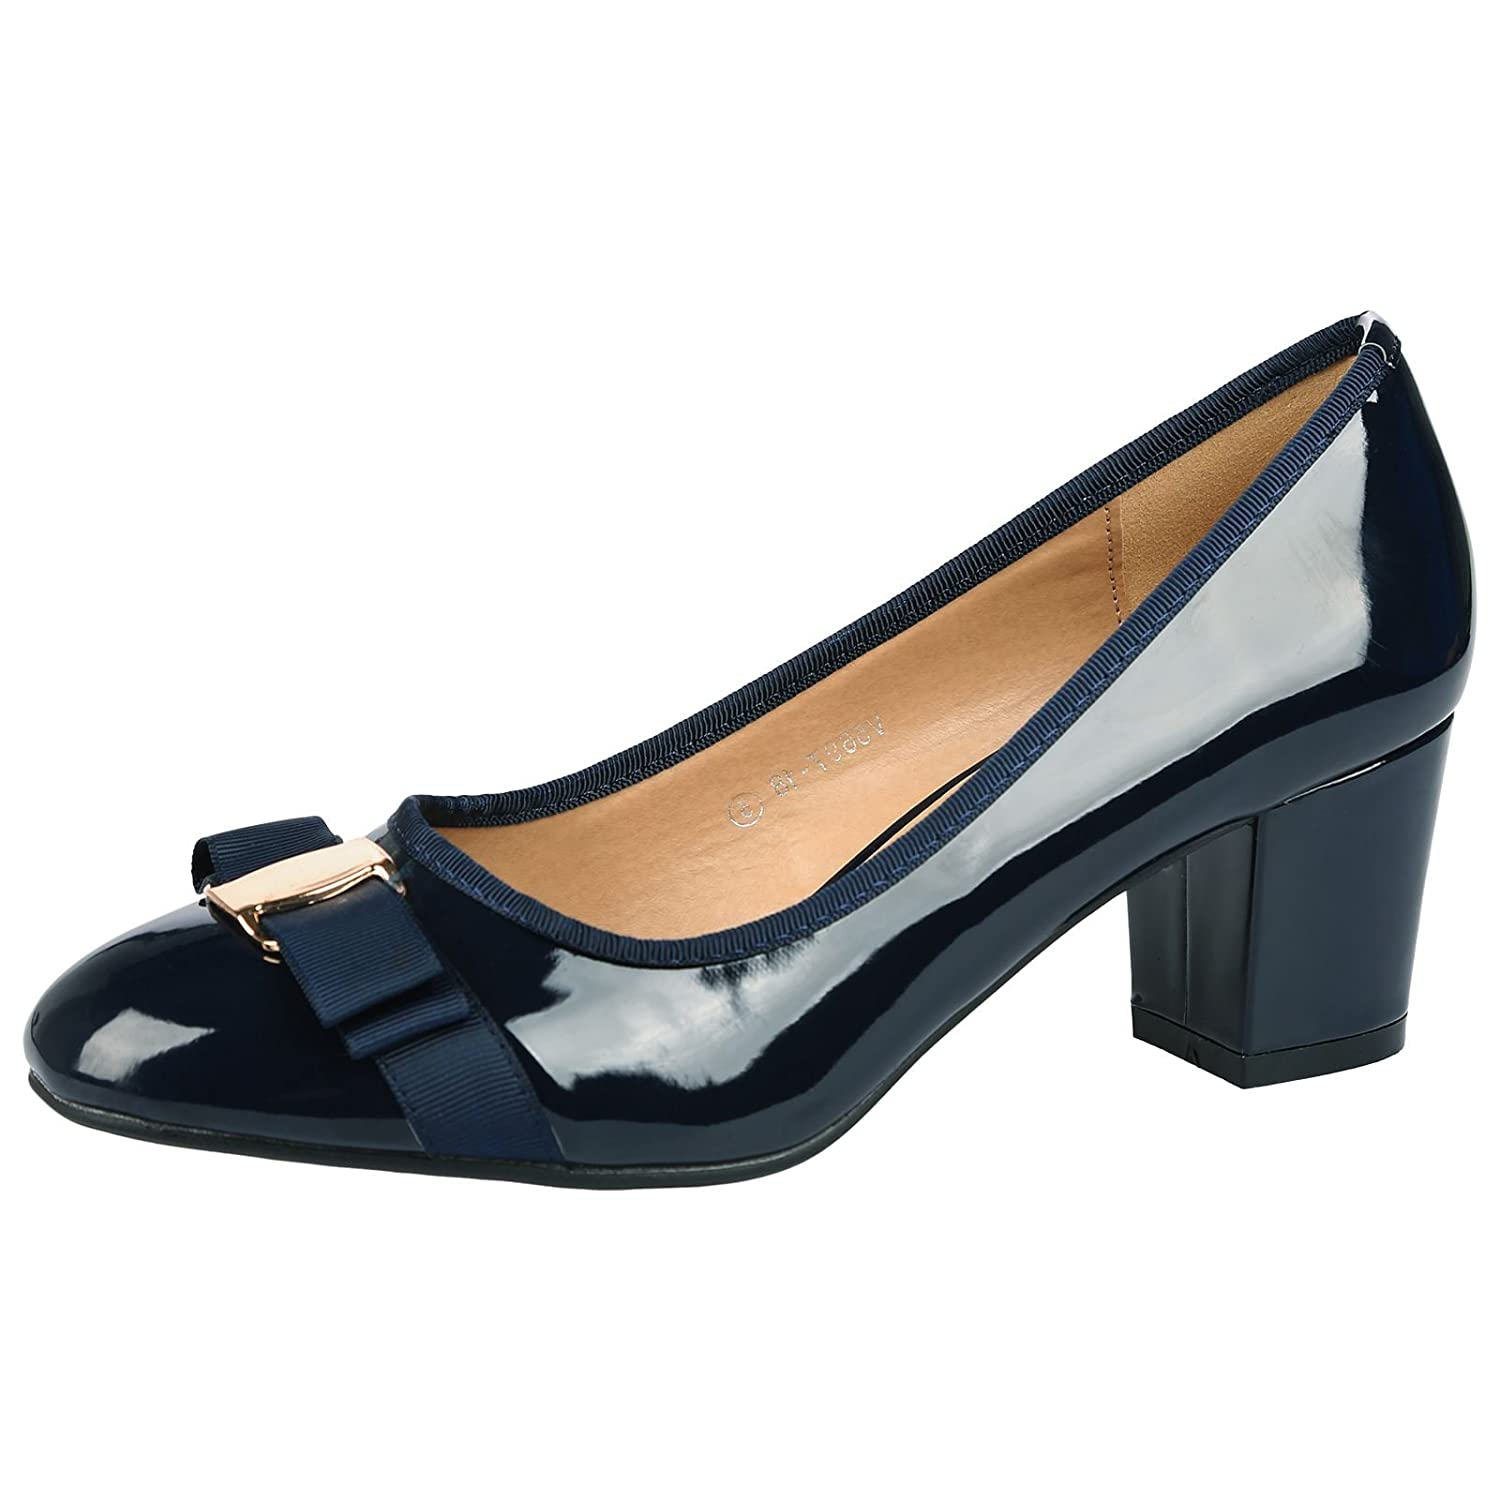 official wholesale price get cheap ByPublicDemand Cherie Womens Mid Heel Bow Detail Slip On Court Shoes (UK 9,  Navy Blue Patent)